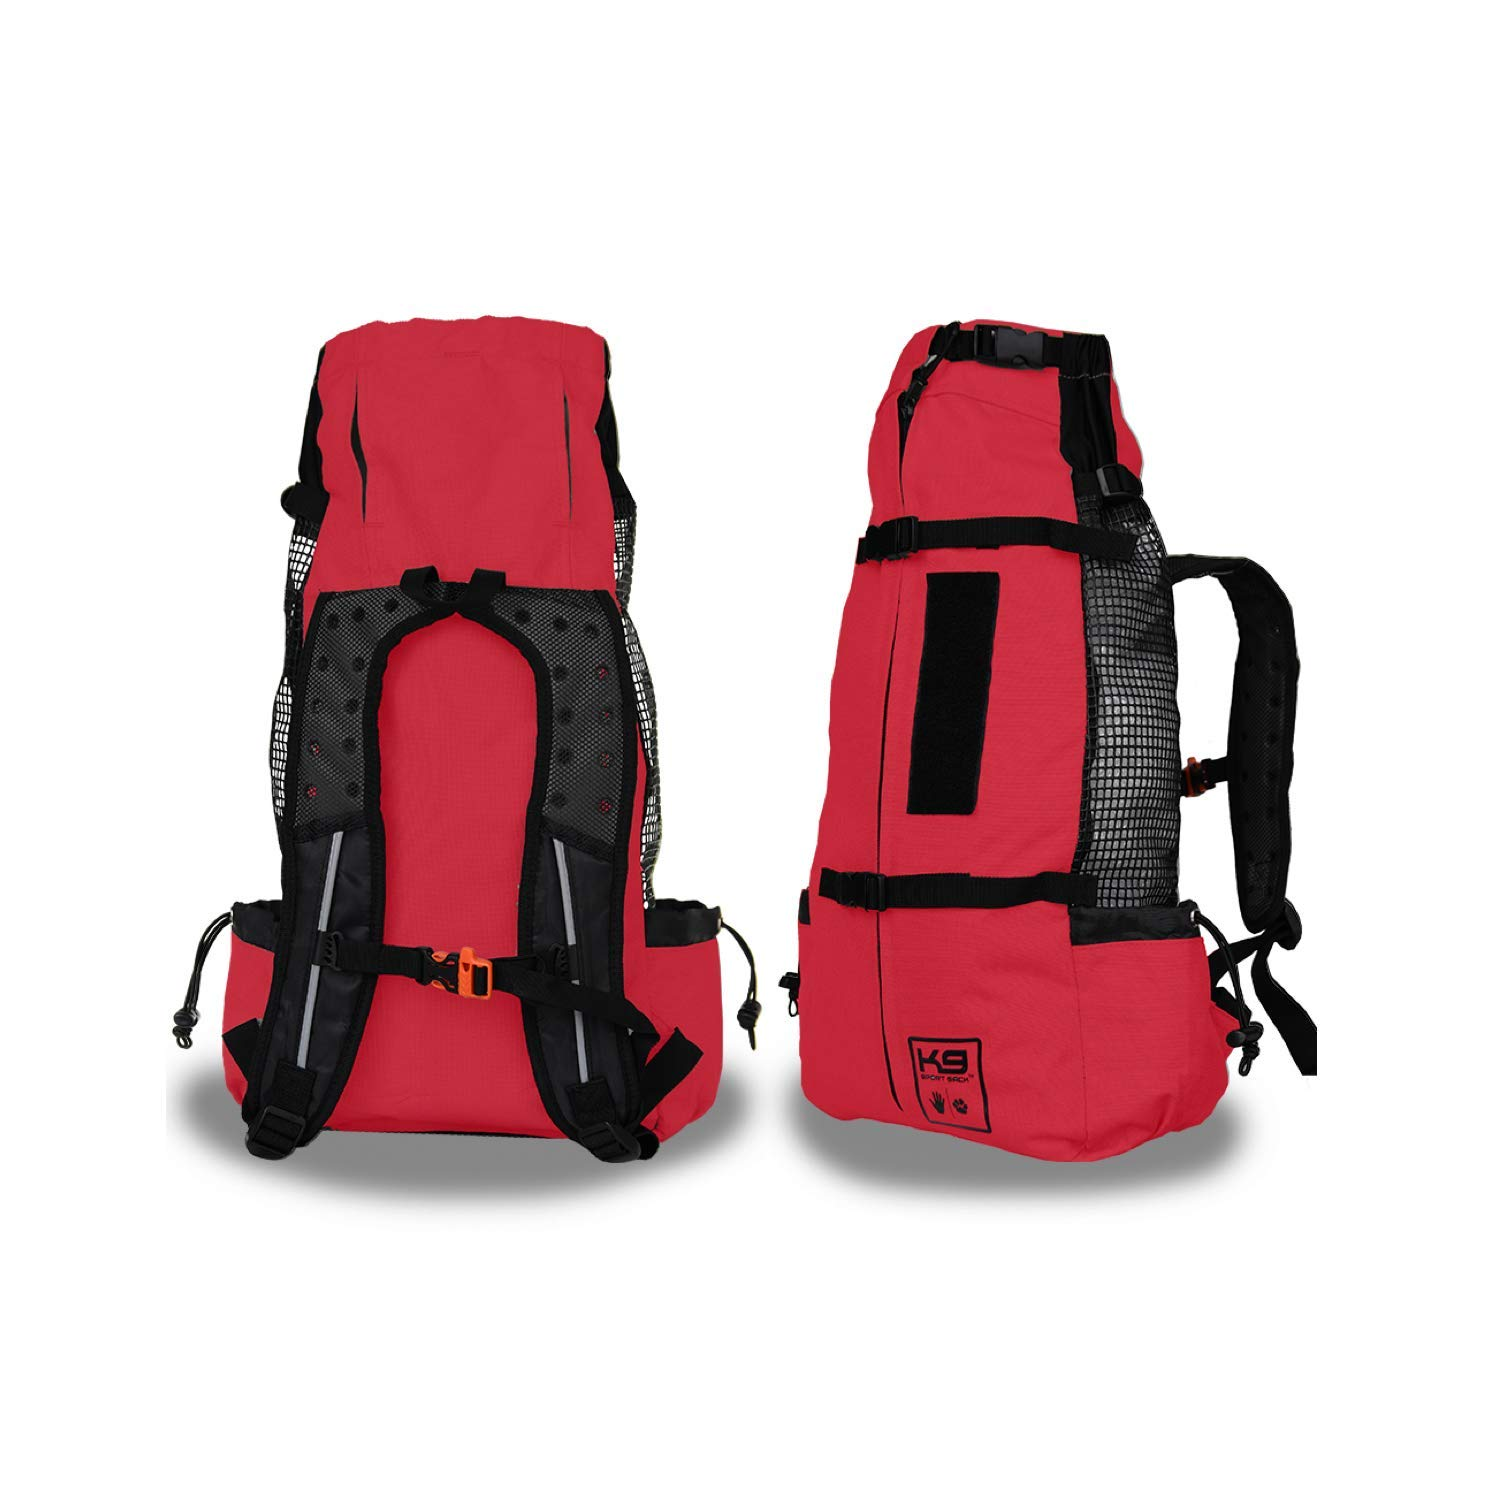 K9 Sport Sack | Dog Carrier Backpack for Small and Medium Pets | Front Facing Adjustable Pack with Storage Bag | Fully Ventilated | Veterinarian Approved (Large, Air - Ruby Red)